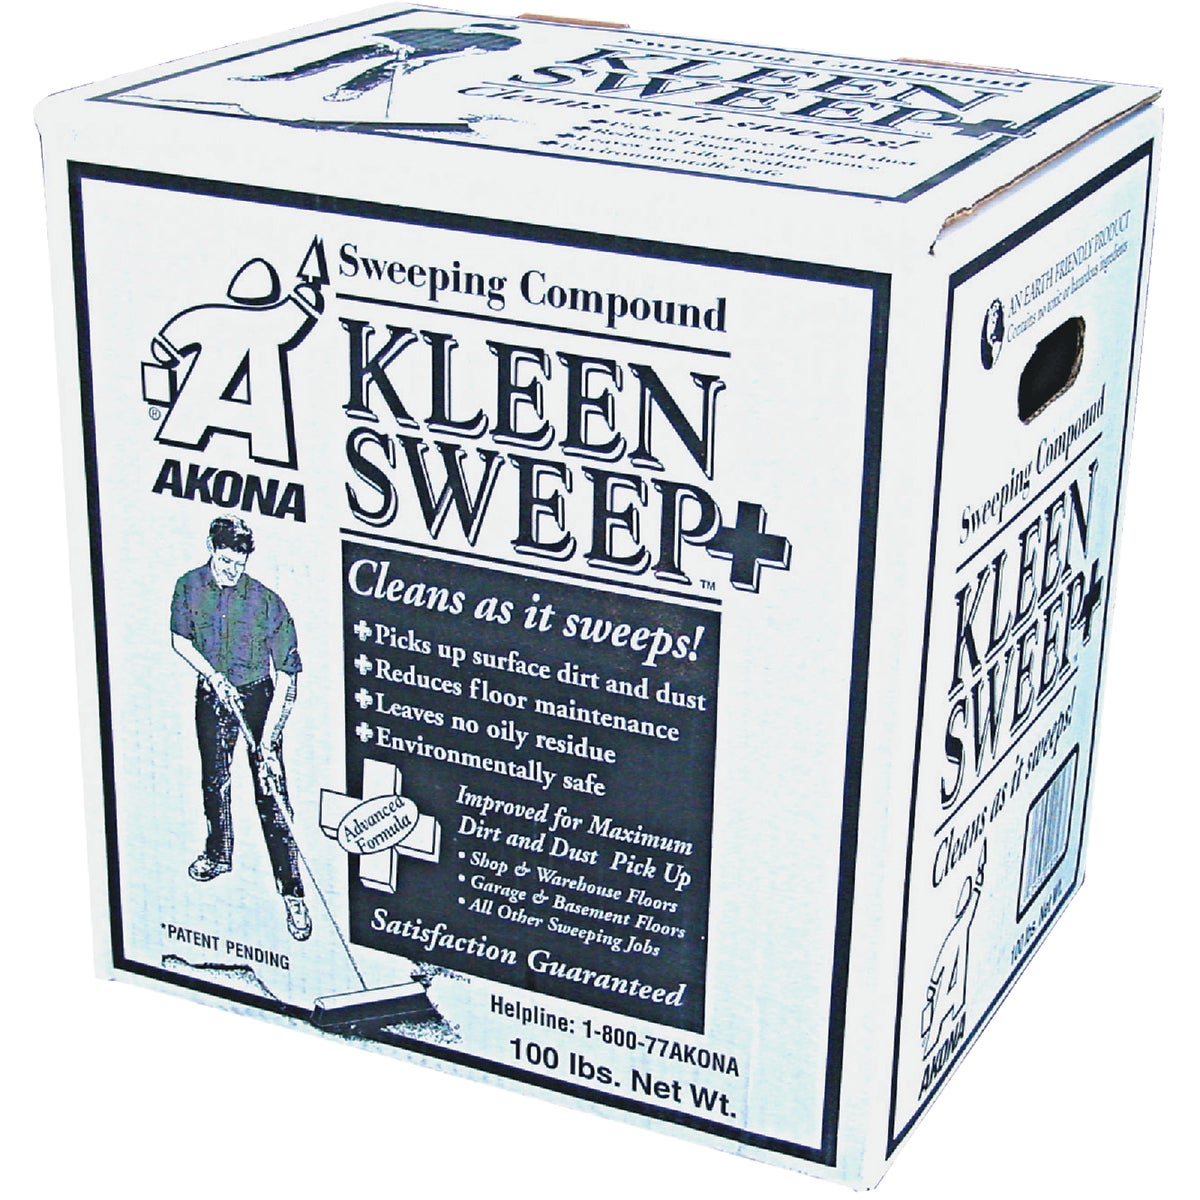 100LB BOX KLEEN SWEEP - 1816 by Kleen Products Llc